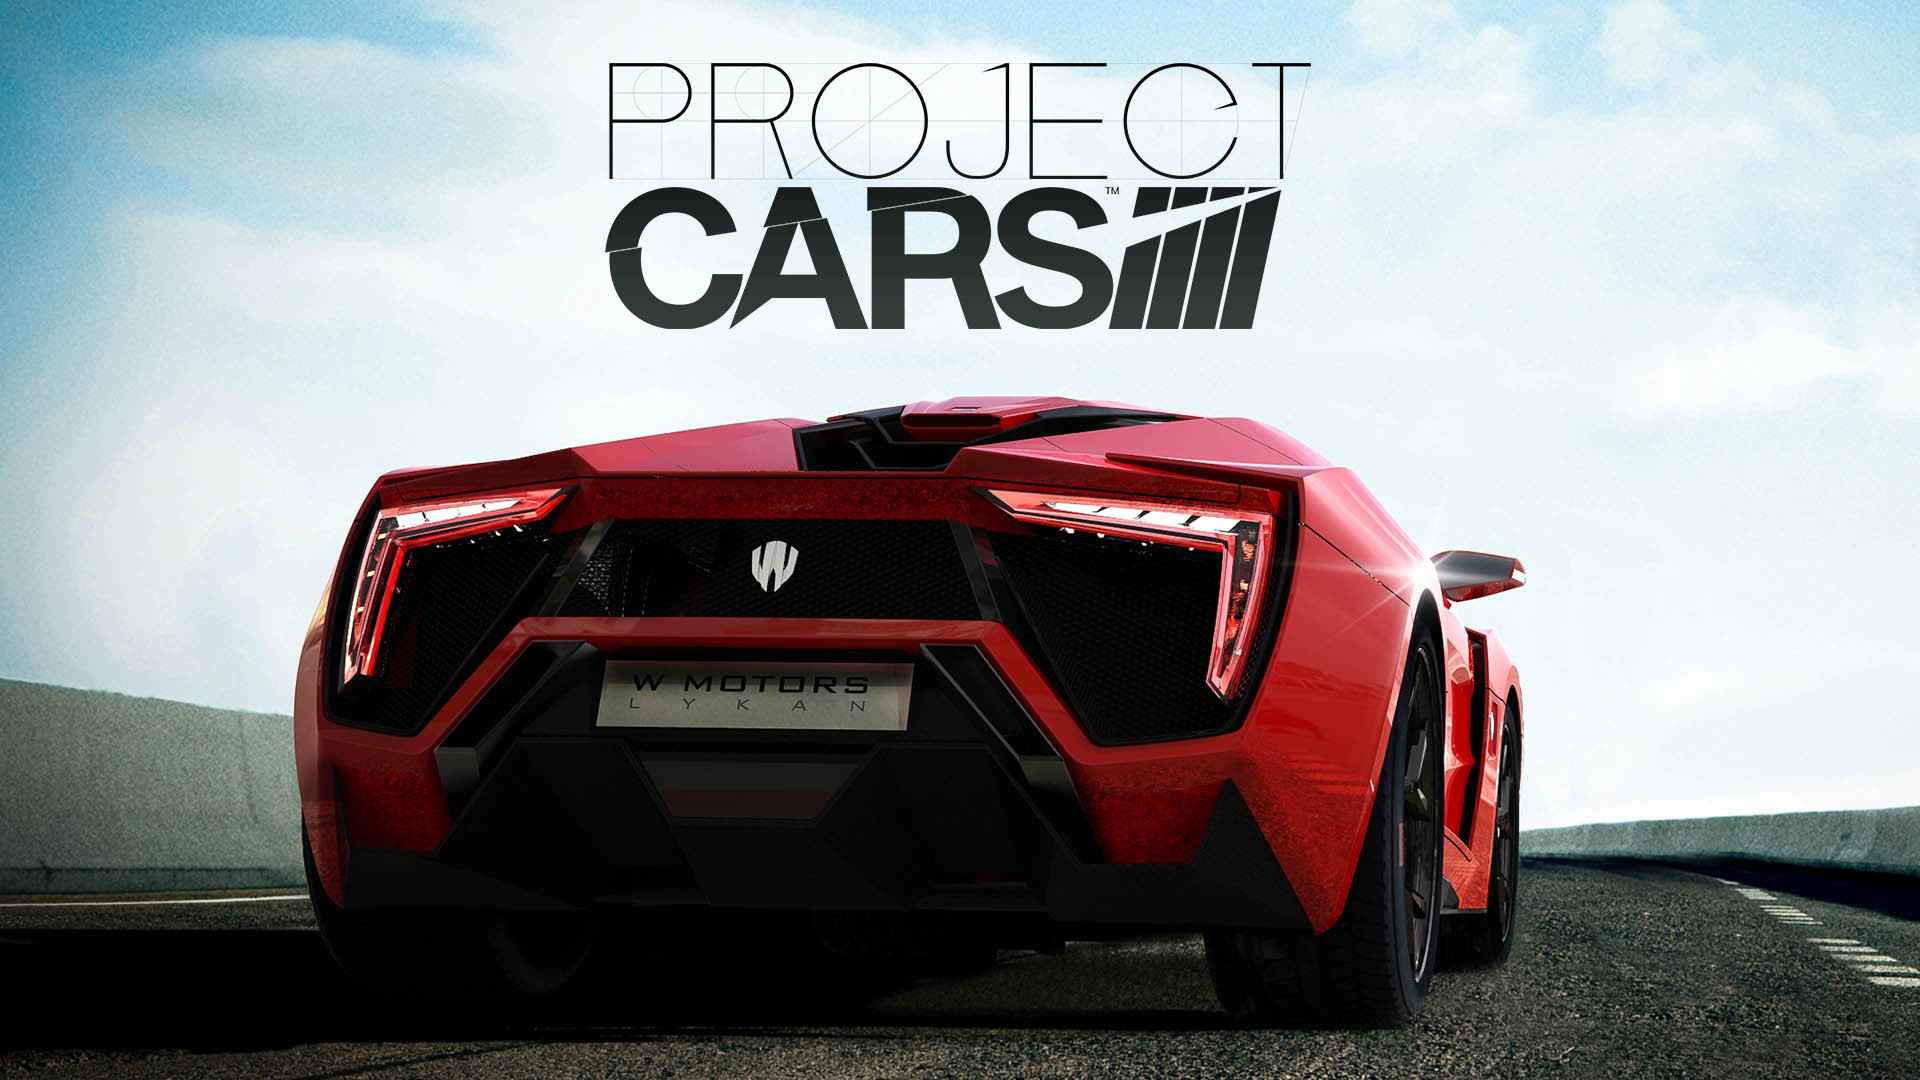 1920x1080 Motors Lykan Hypersport Rear View Project Cars Wallpaper #3455  CoolWallpapers.site